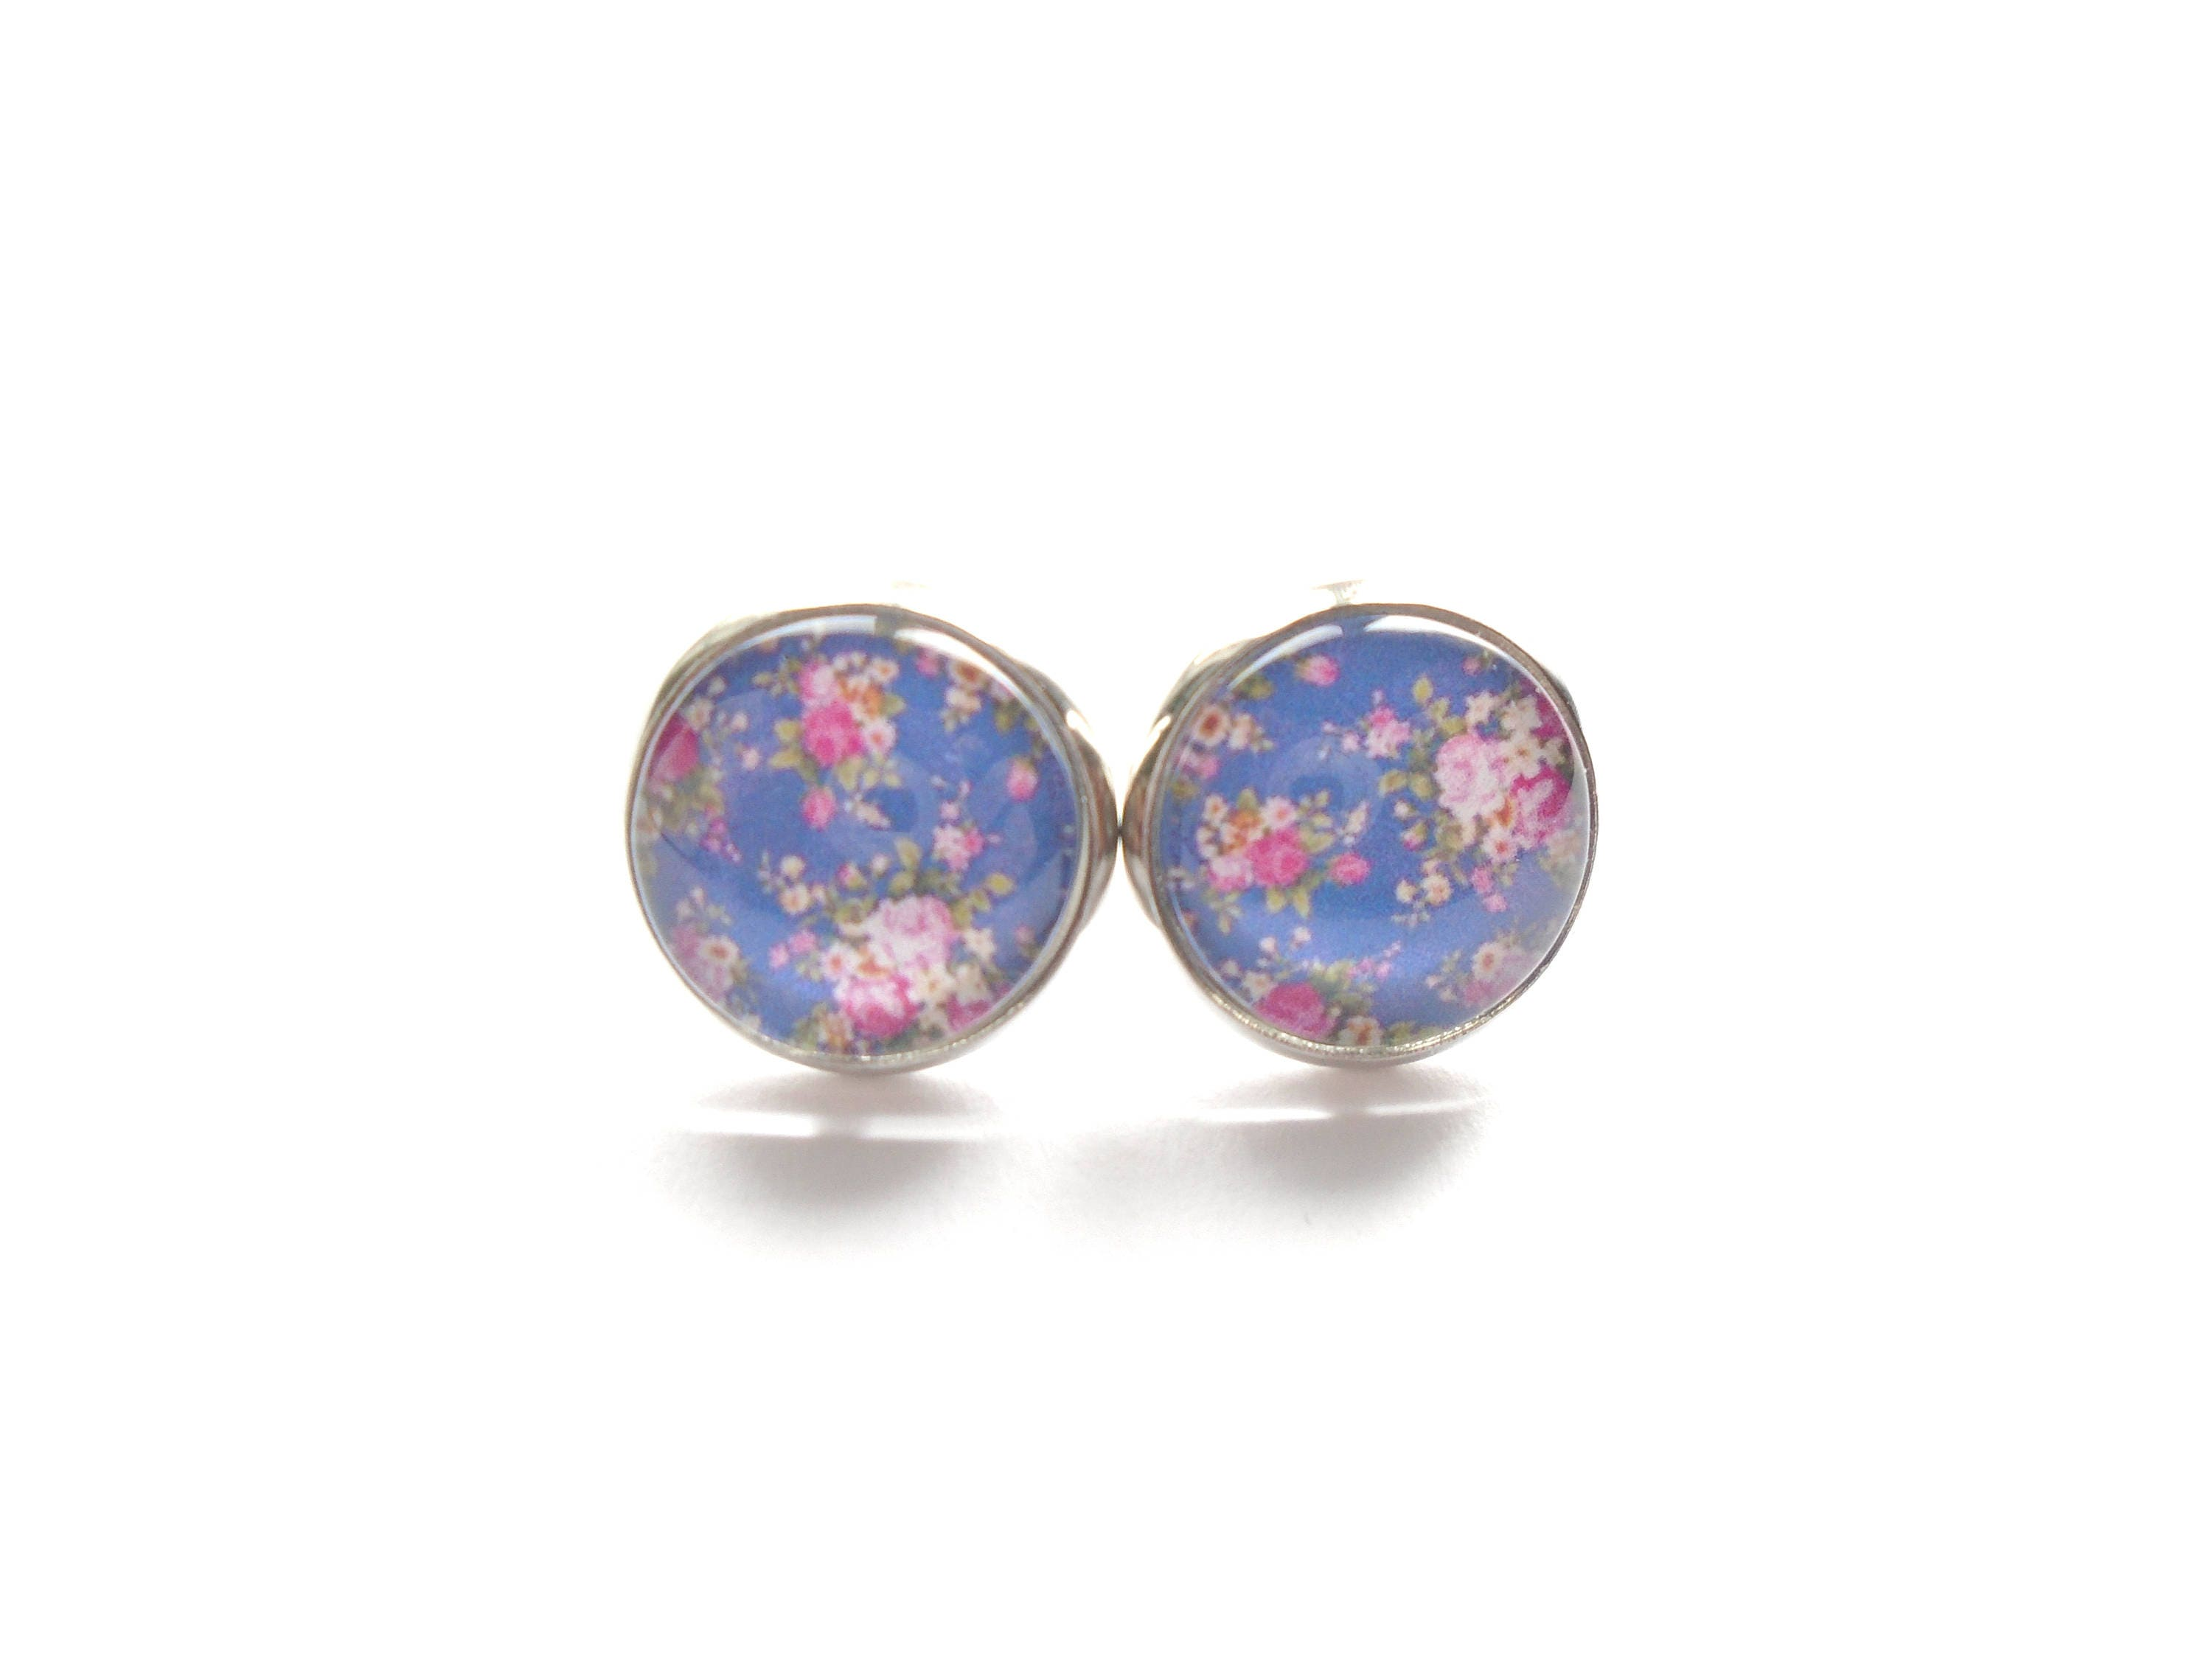 q genuine original c buy co from nz online opal stud fishpond jewellery